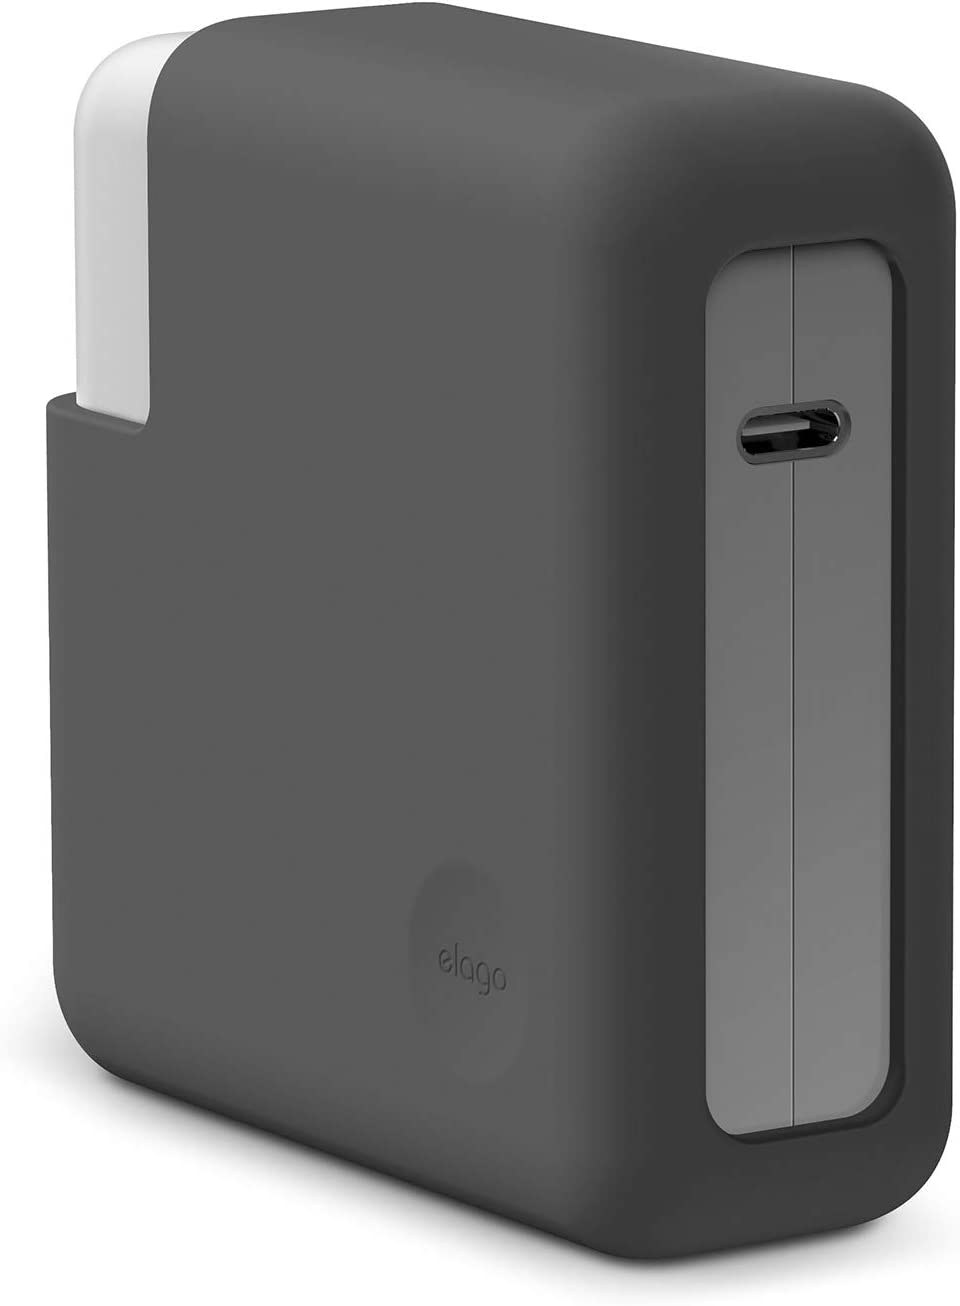 "elago MacBook Charger Cover for MacBook Pro 16"", 15"" [Extra Protection] [Dark Grey]"